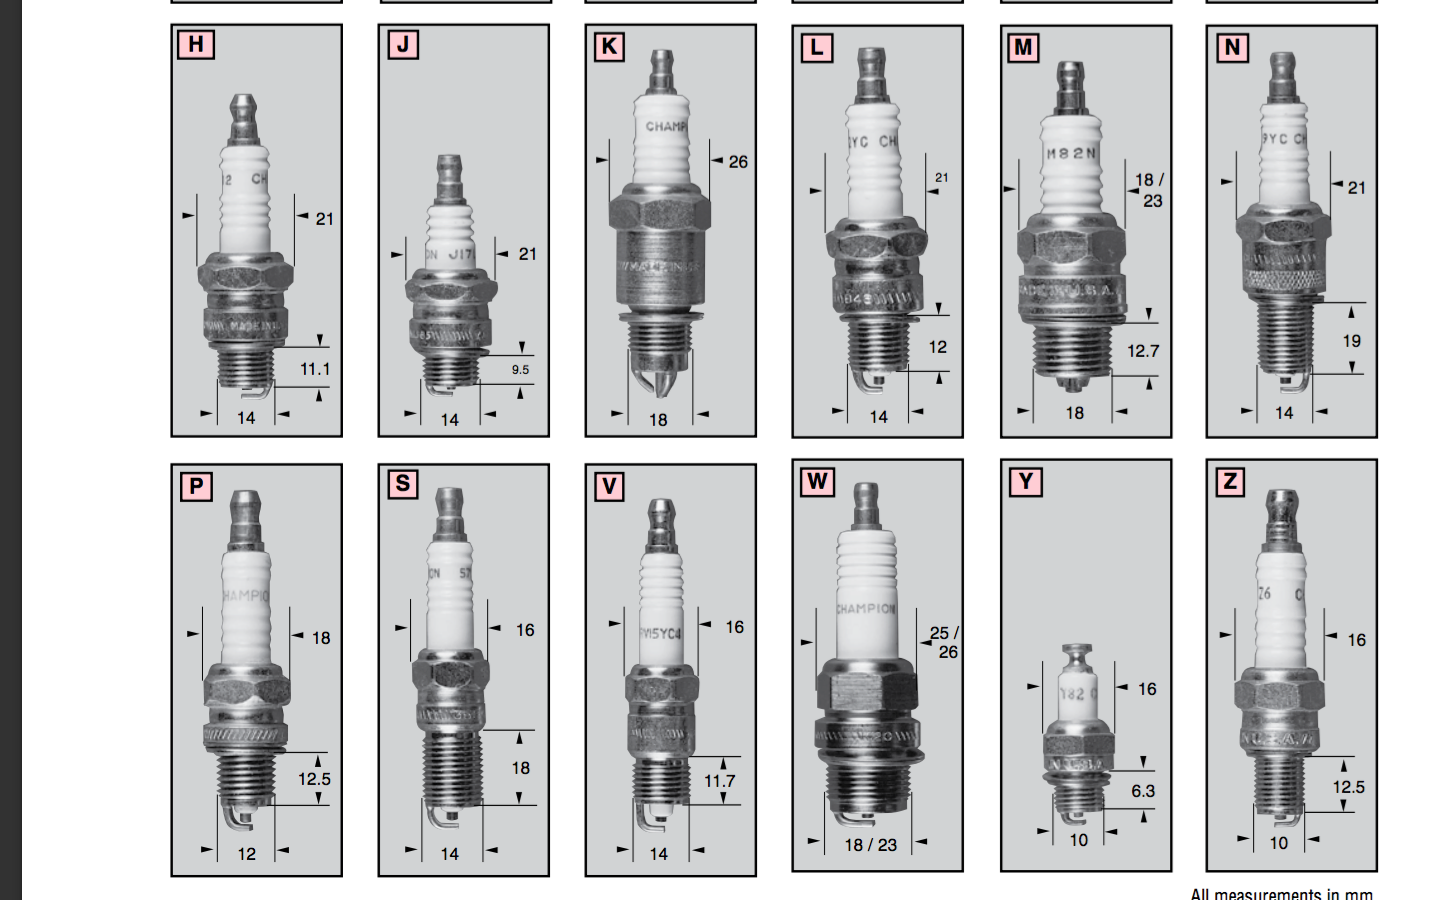 Spark Plug Gap Guide Pictures to Pin on Pinterest - PinsDaddy